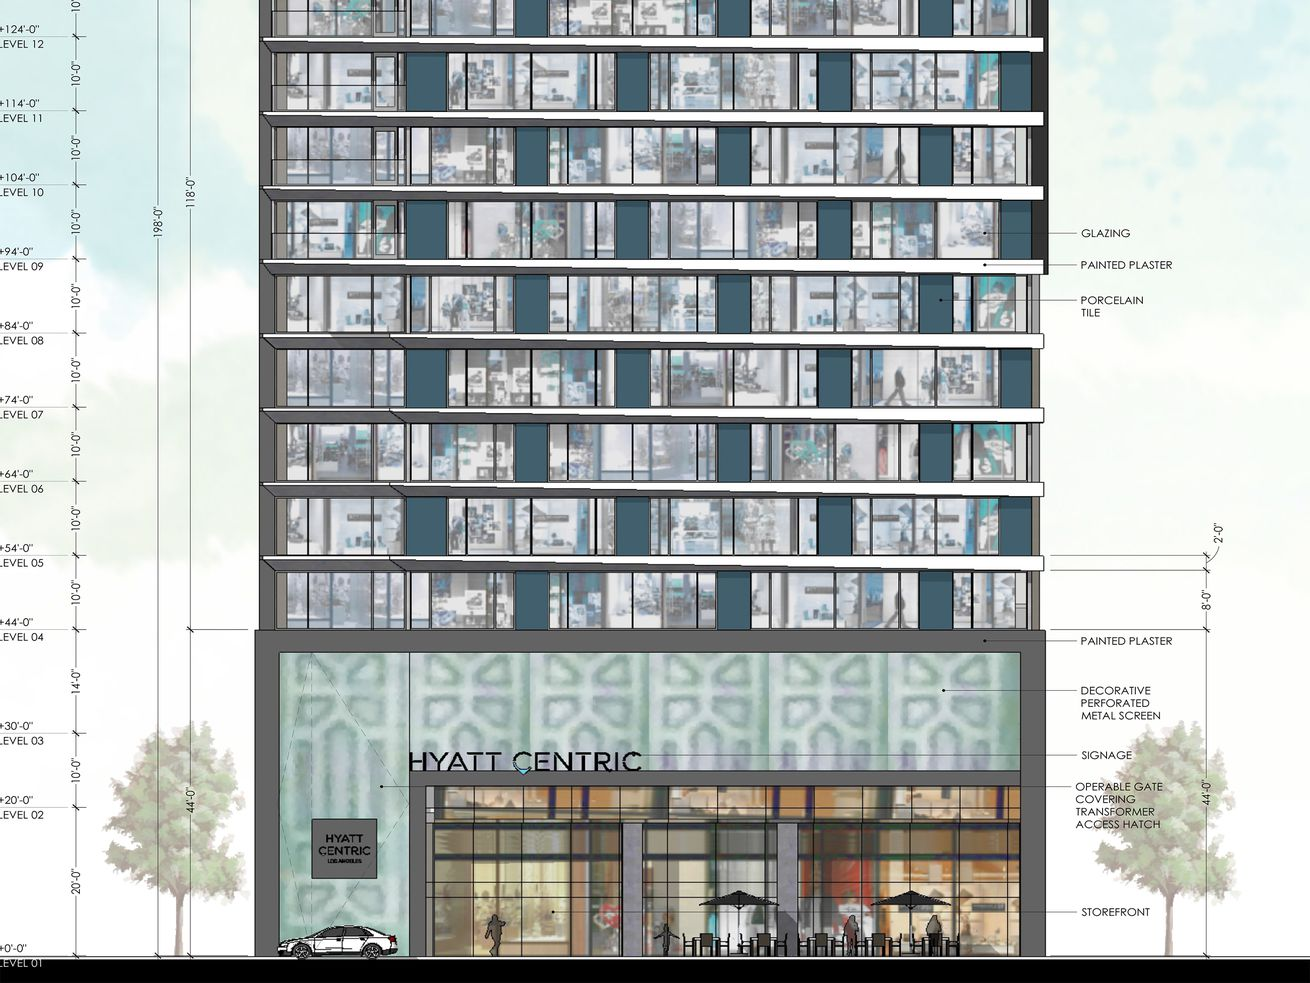 The hotel planned for 1138 South Broadway.